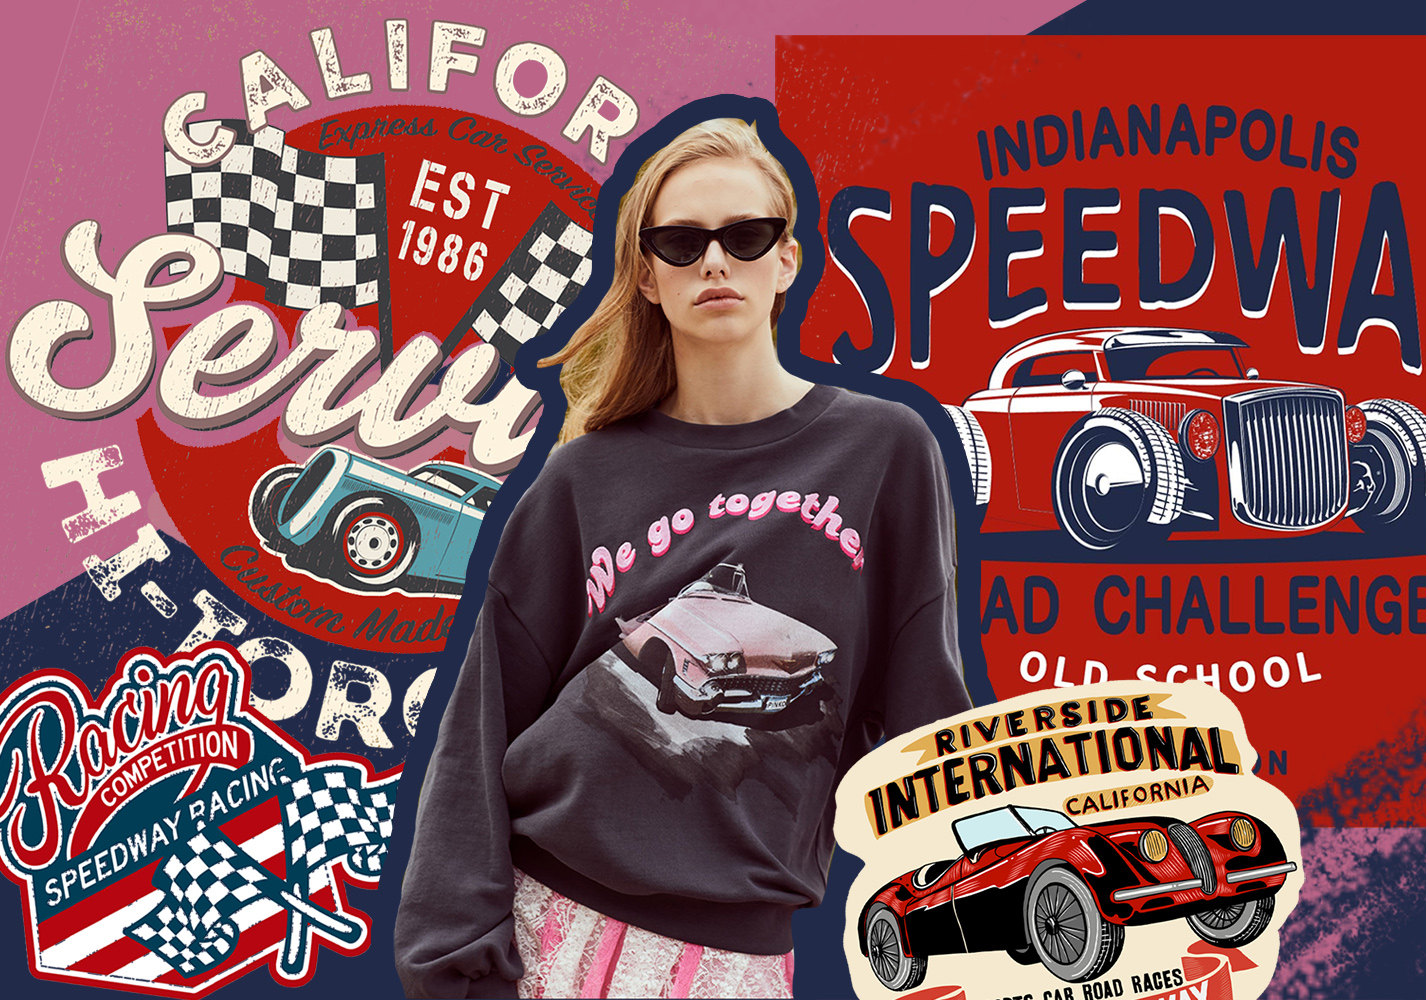 Speeding -- 20/21 A/W Pattern Trend for Womenswear